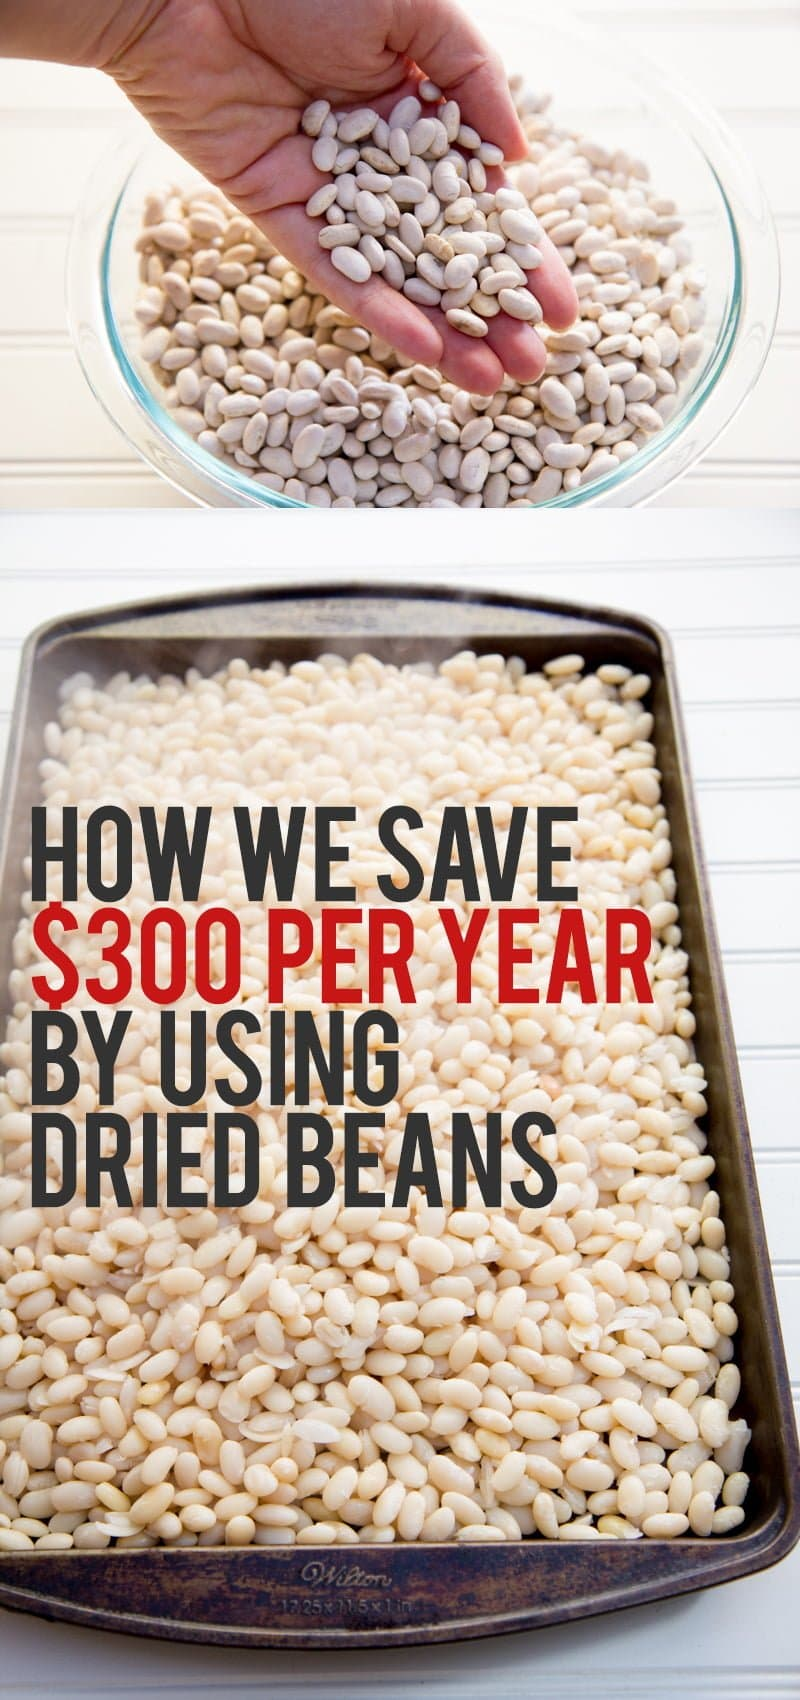 How We Save $300 Per Year By Using Dried Beans